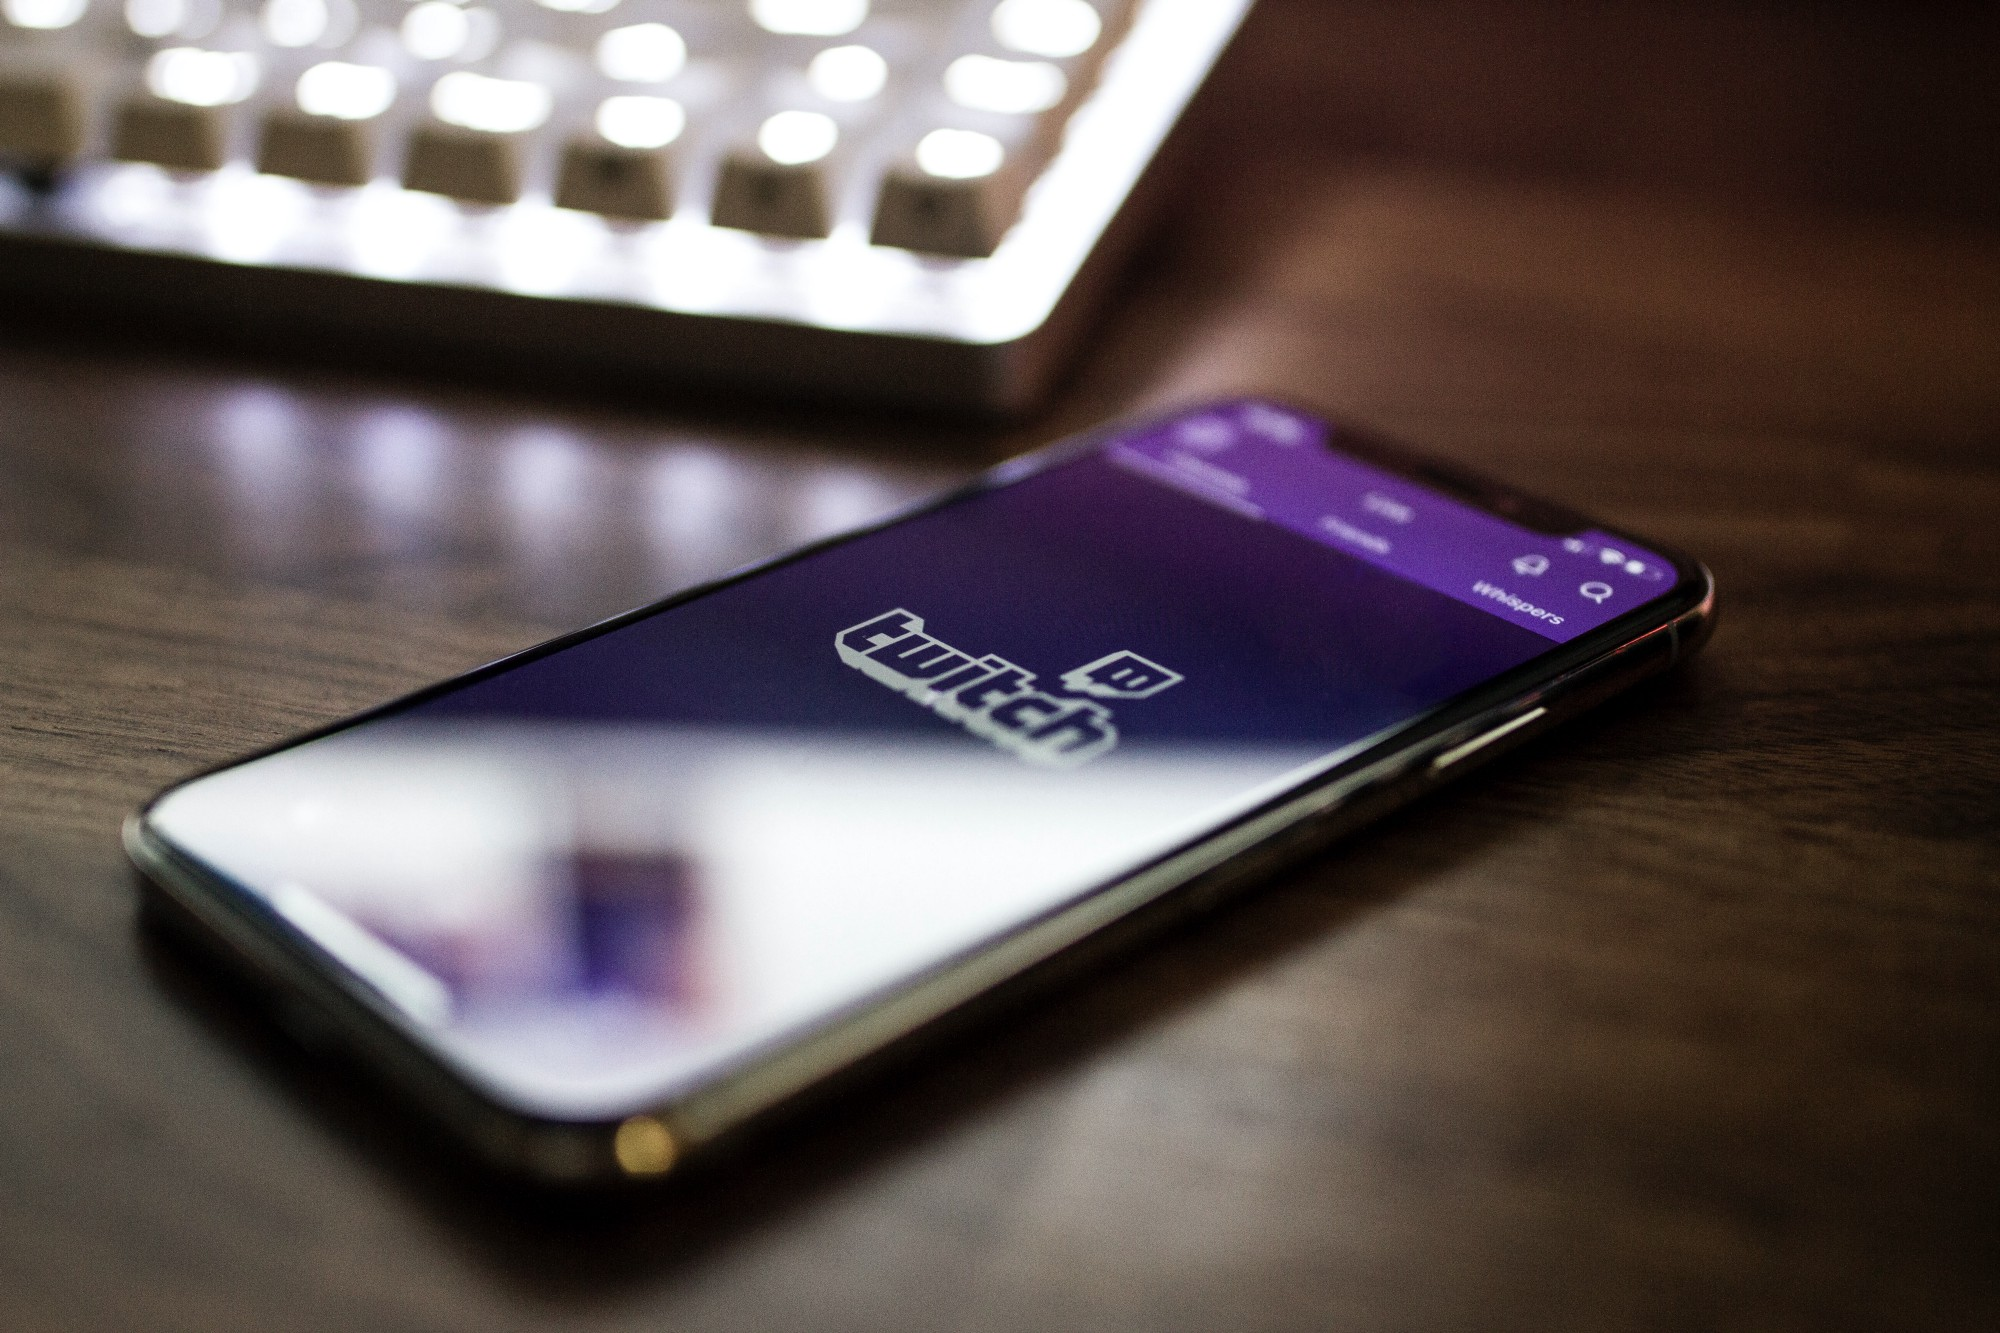 A mobile device with the Twitch logo displayed.